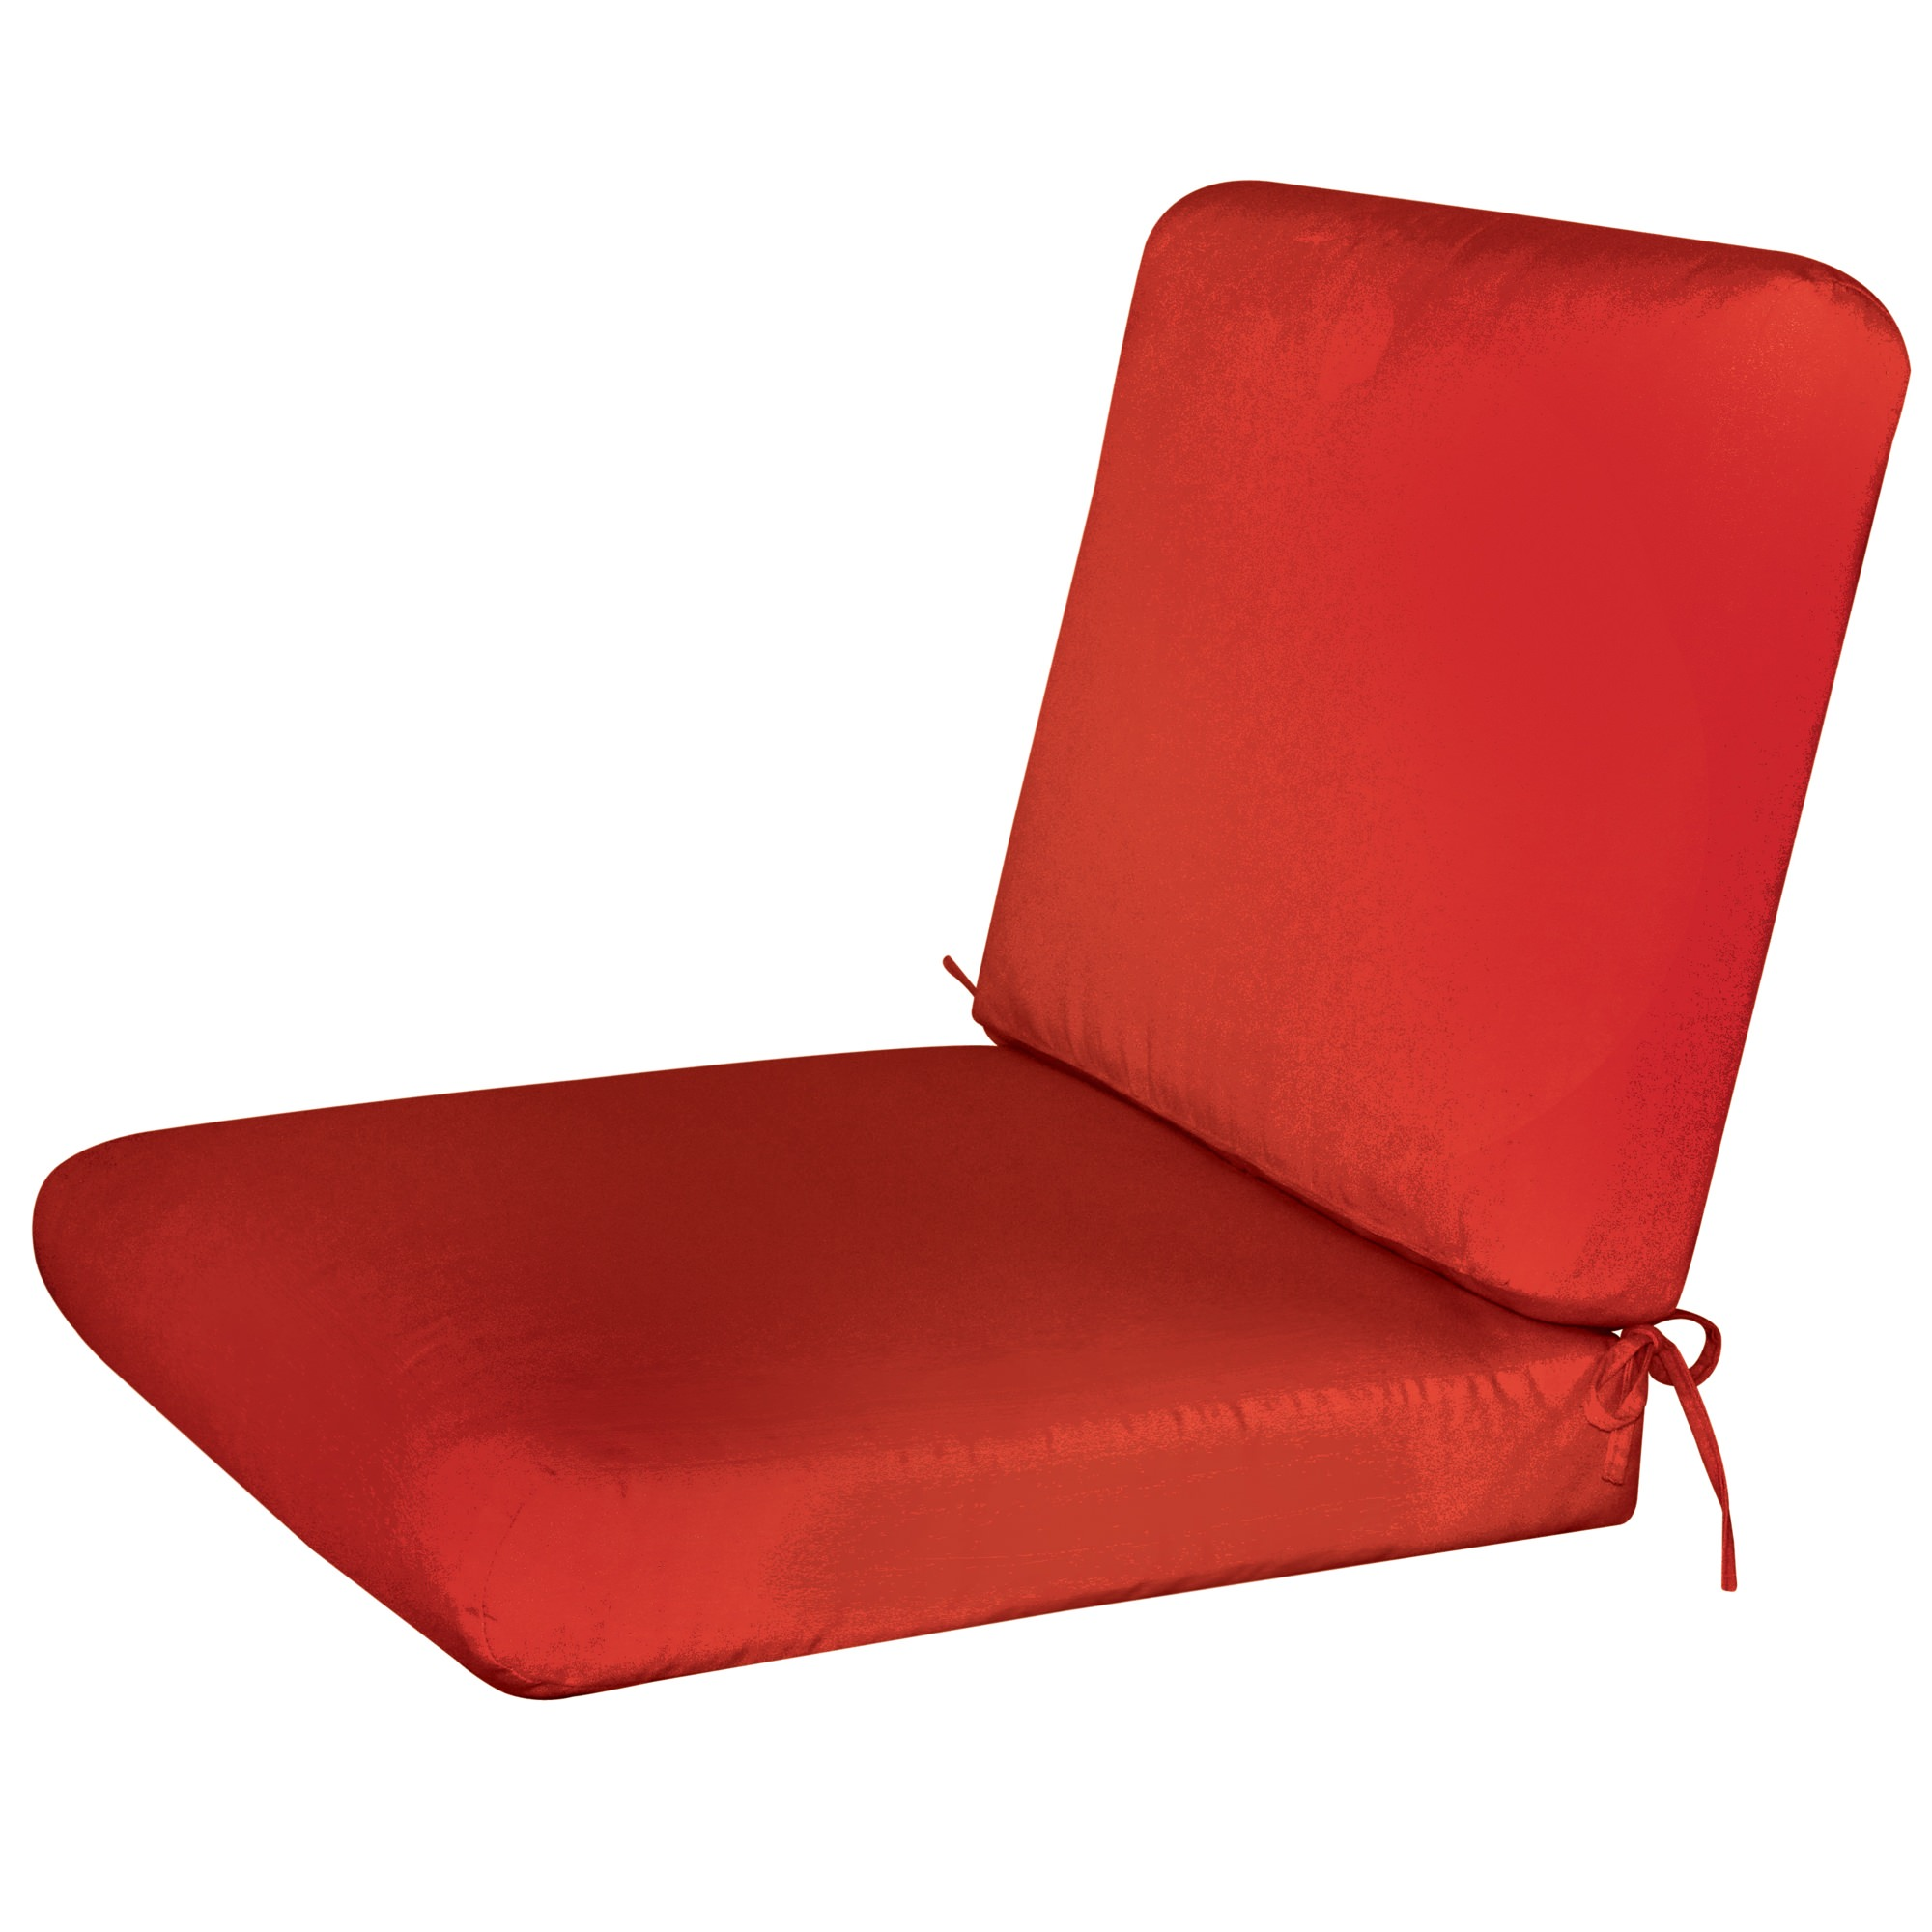 ... Bullnost 2 Piece Club Chair Sunbrella Cushion ...  Sunbrella Patio Cushions